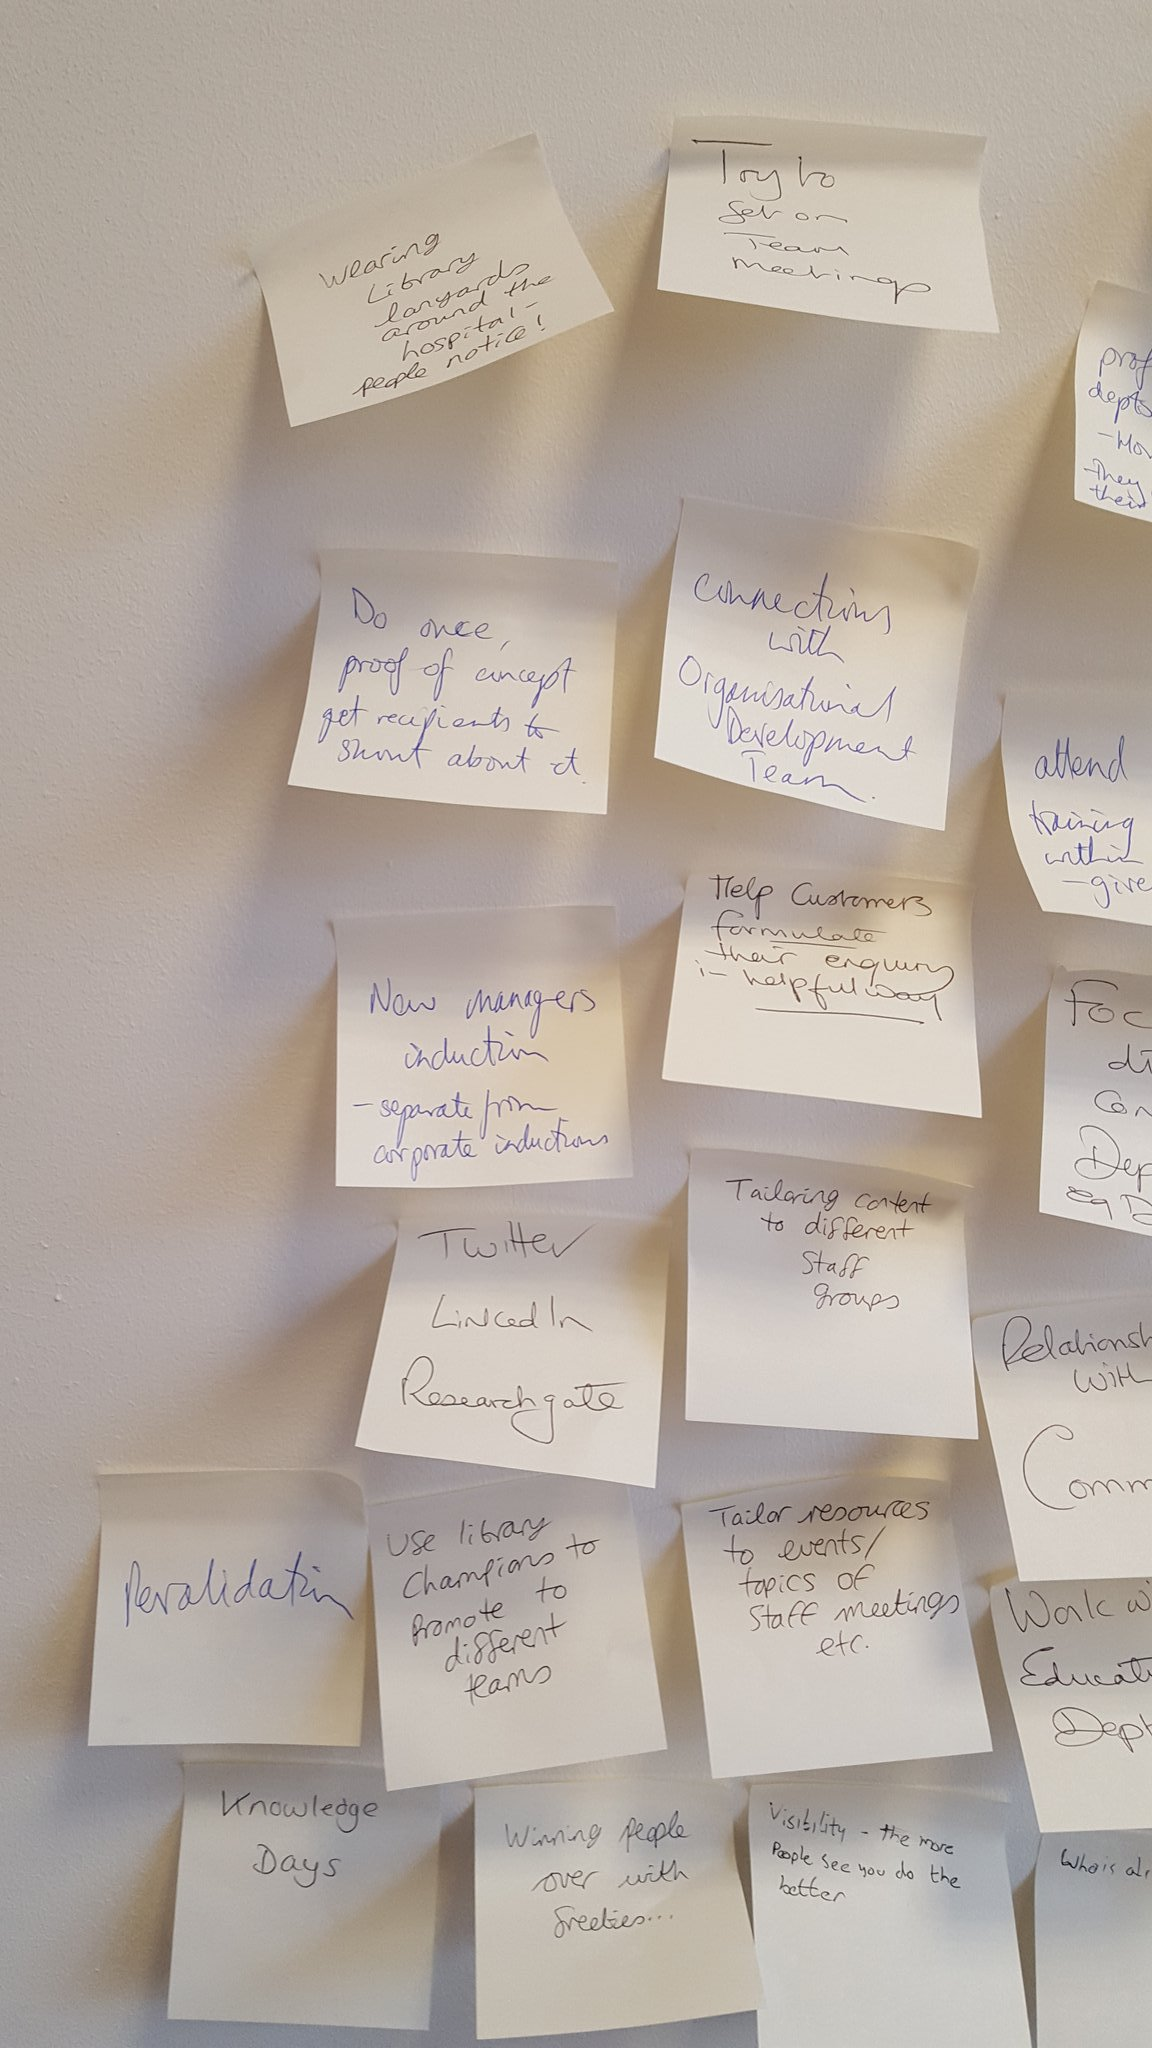 Some of our ideas on knowledge creation and utilisation #candocafe https://t.co/hXlmxCwzRb